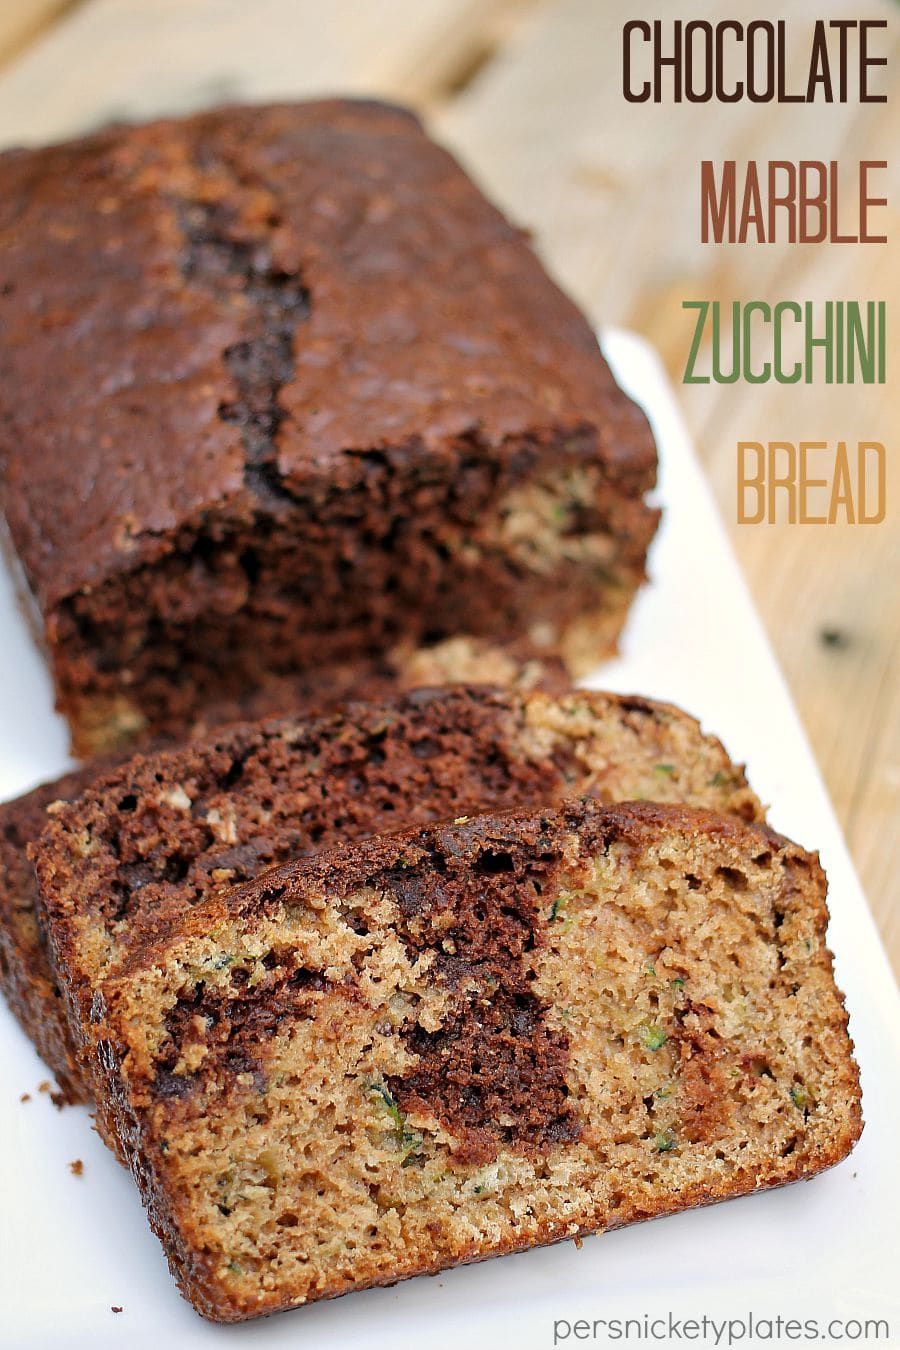 Chocolate Marble Zucchini Bread - give classic zucchini bread an upgrade when you swirl in chocolate batter and mini chocolate chips! | www.persnicketyplates.com via @pplates